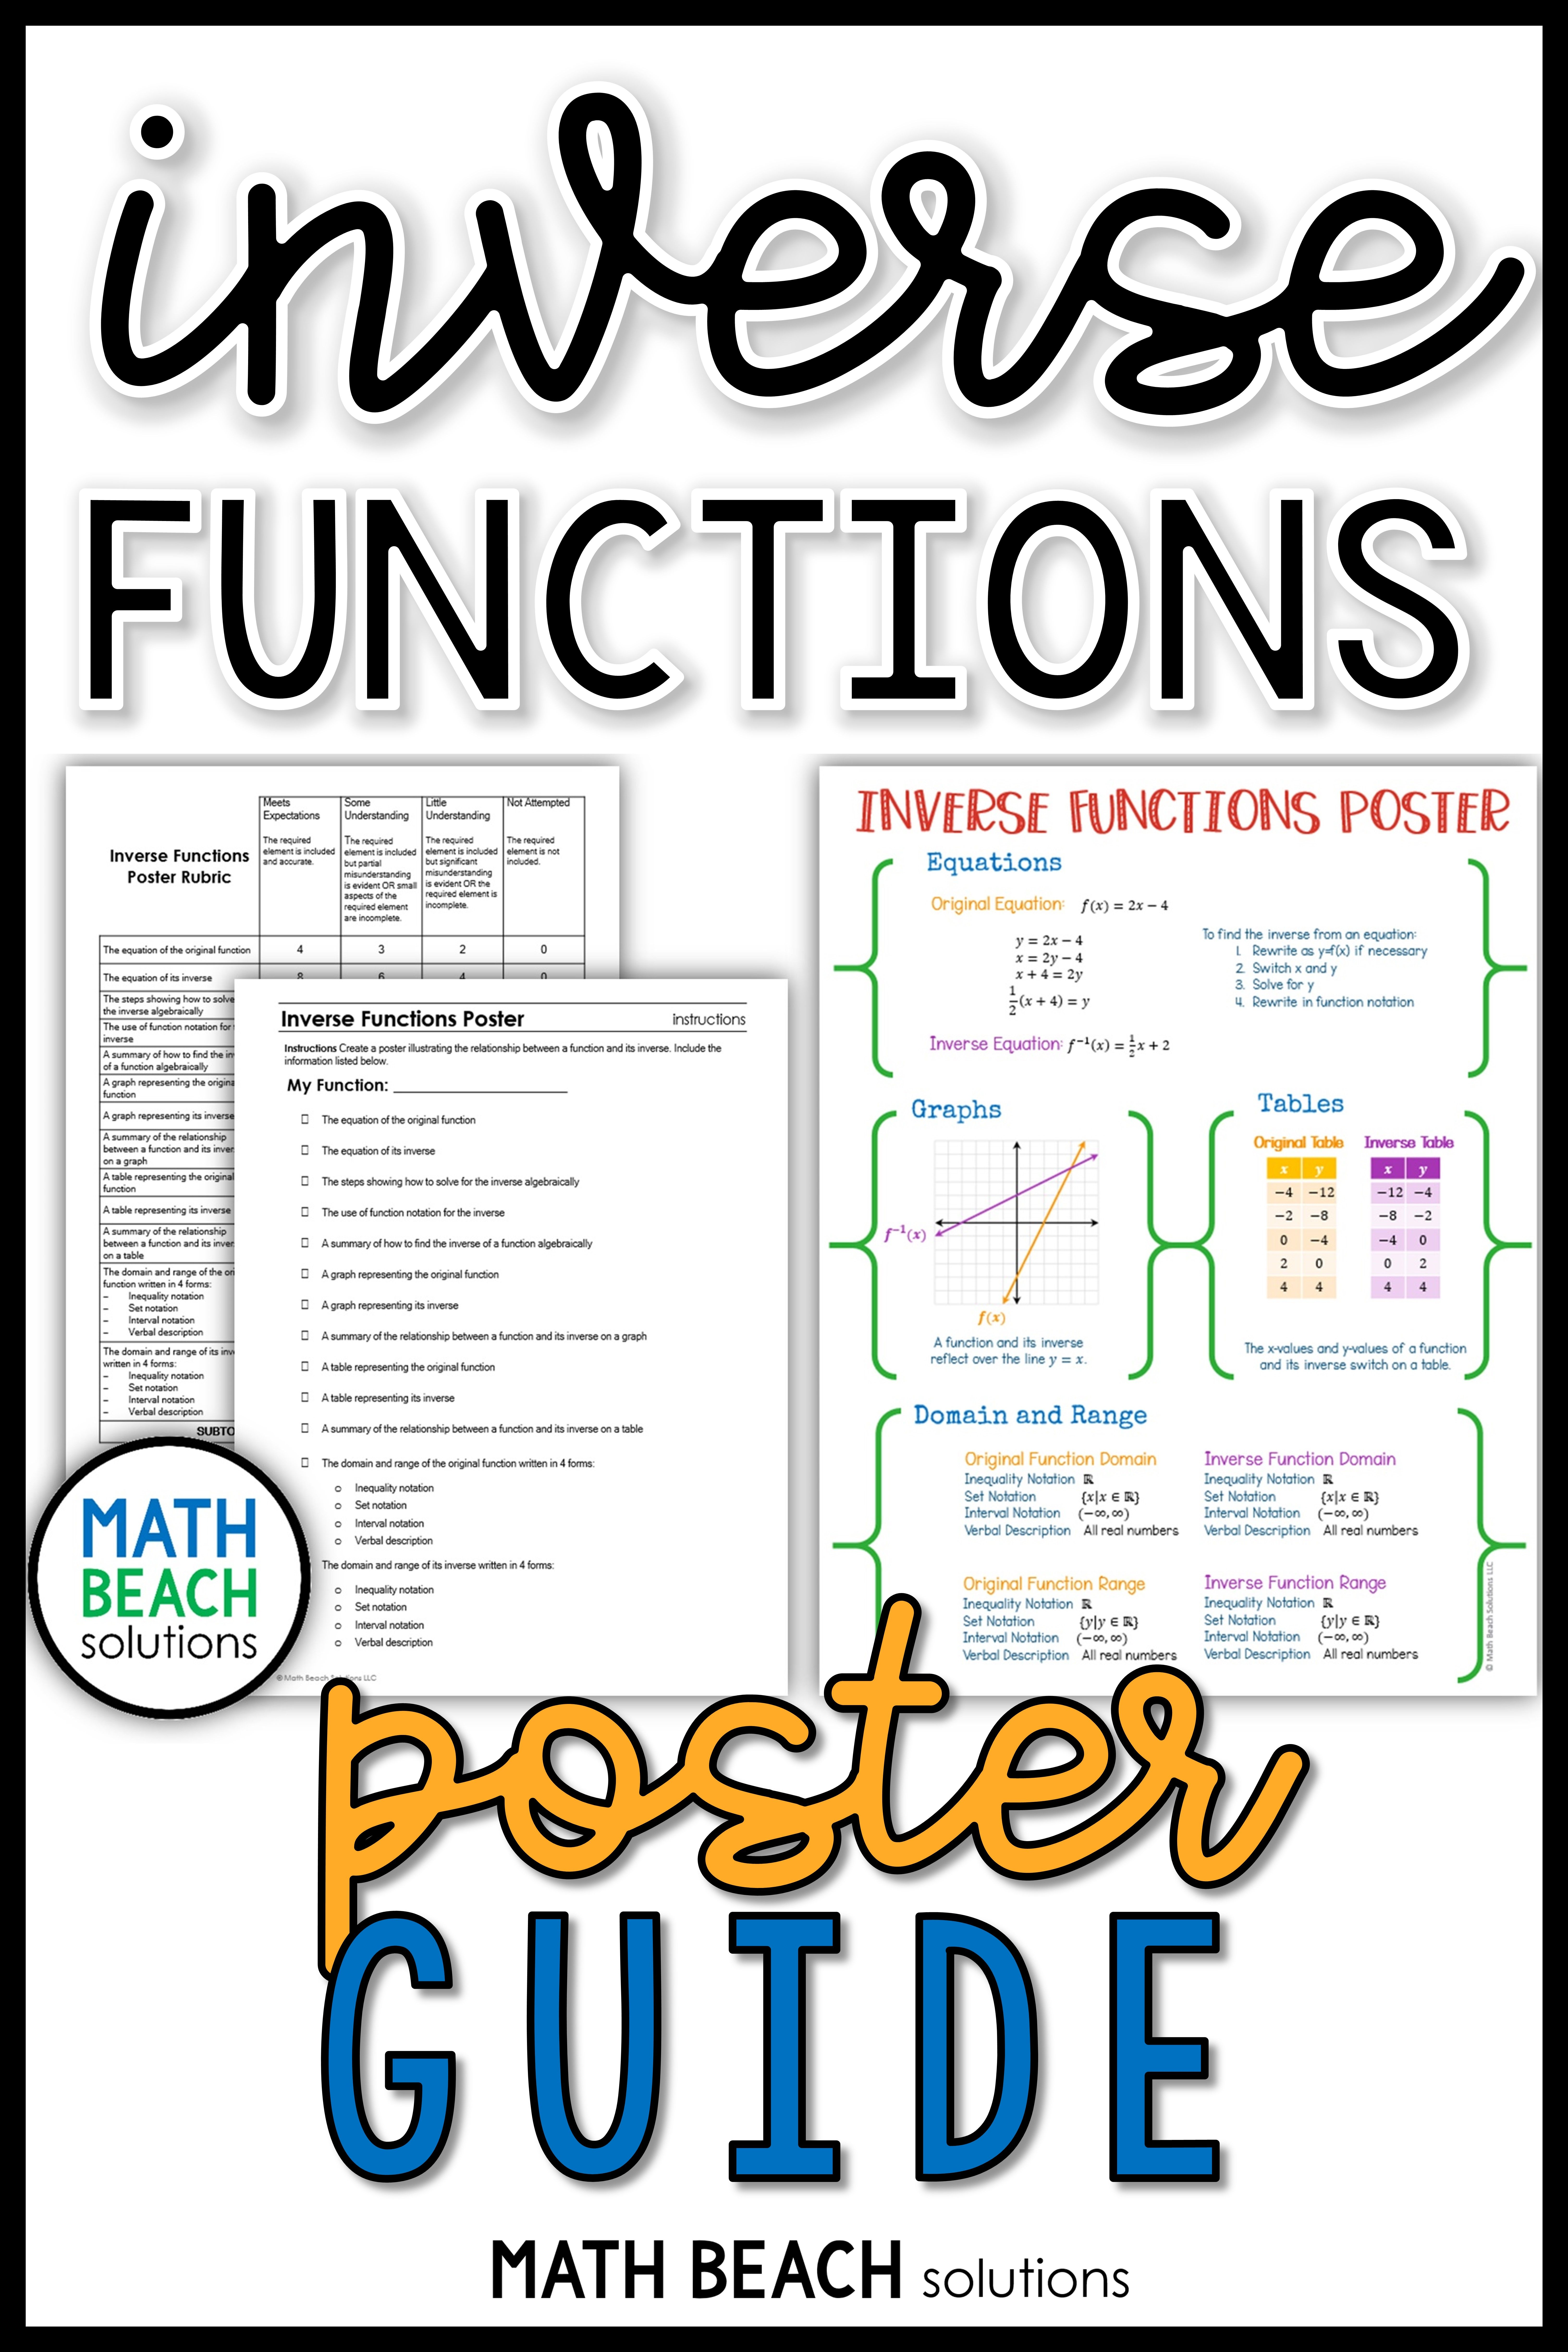 Inverse Functions Poster Activity Guide With Images